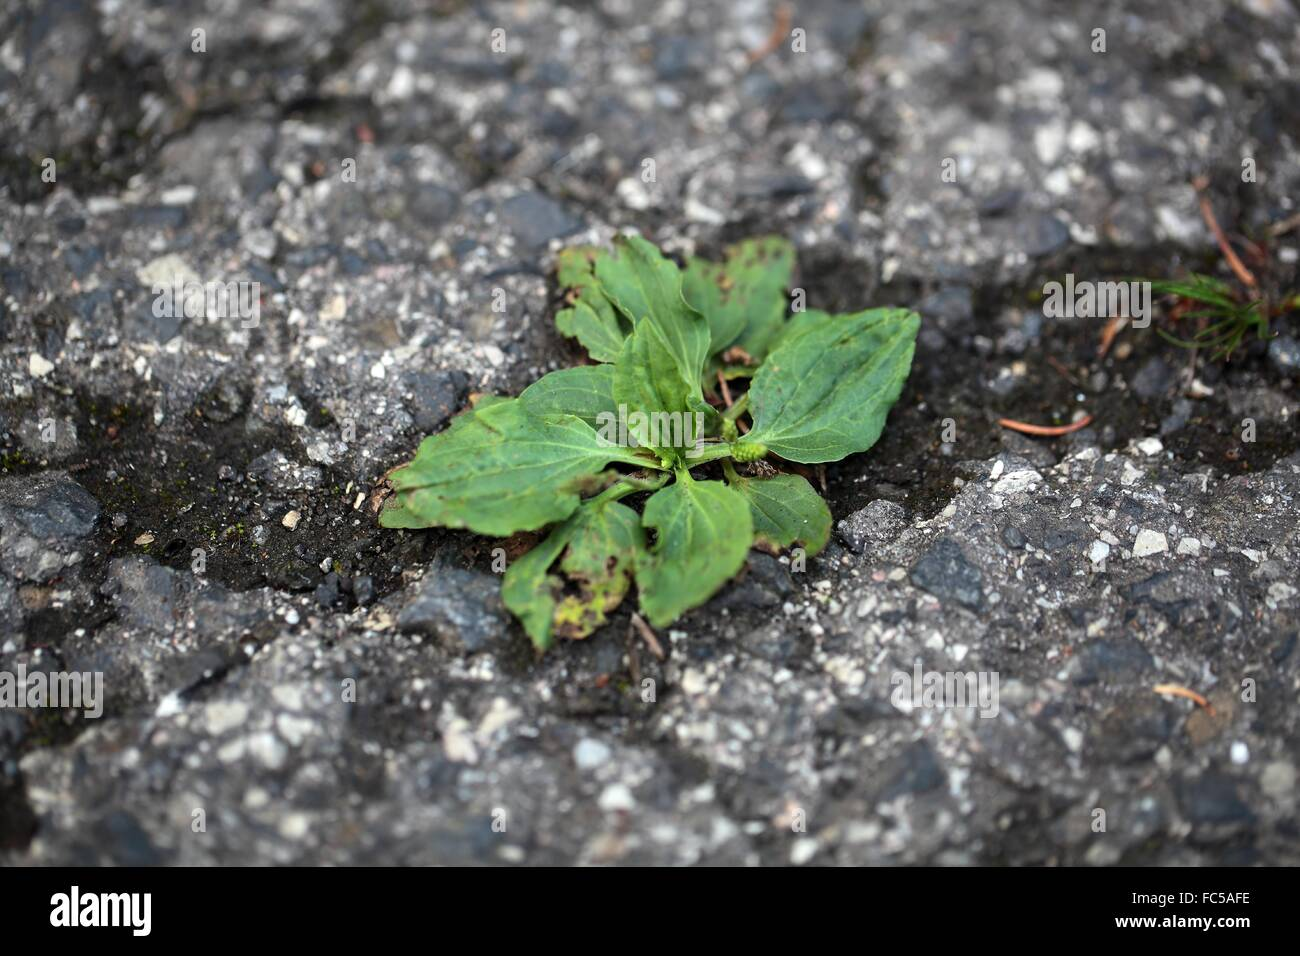 Green plants growing on a tarred road. - Stock Image